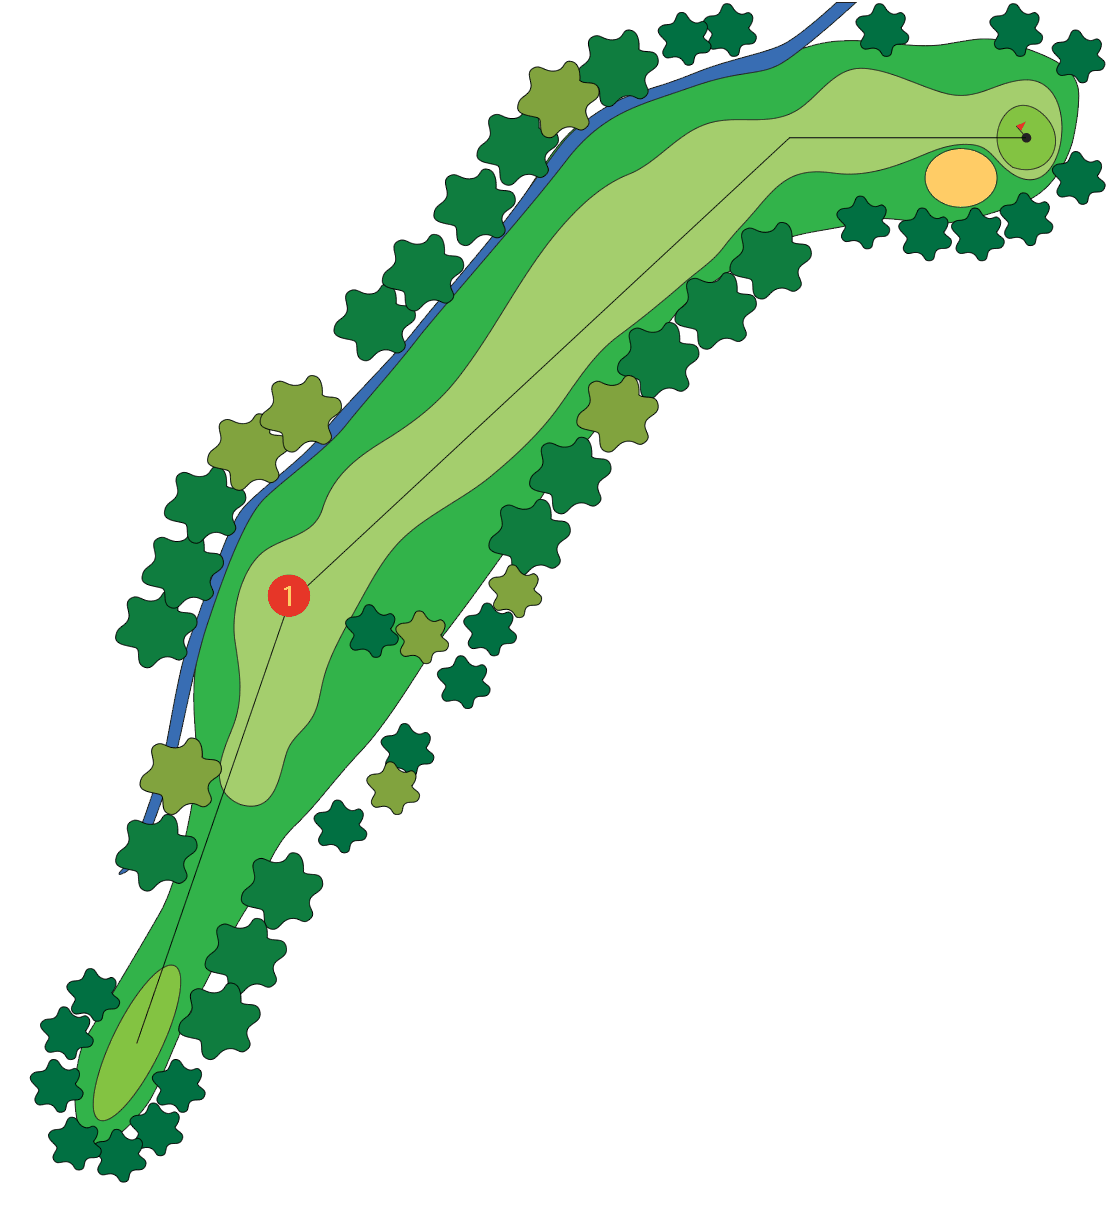 Golfing clipart hole in one. Course guide freeway golf